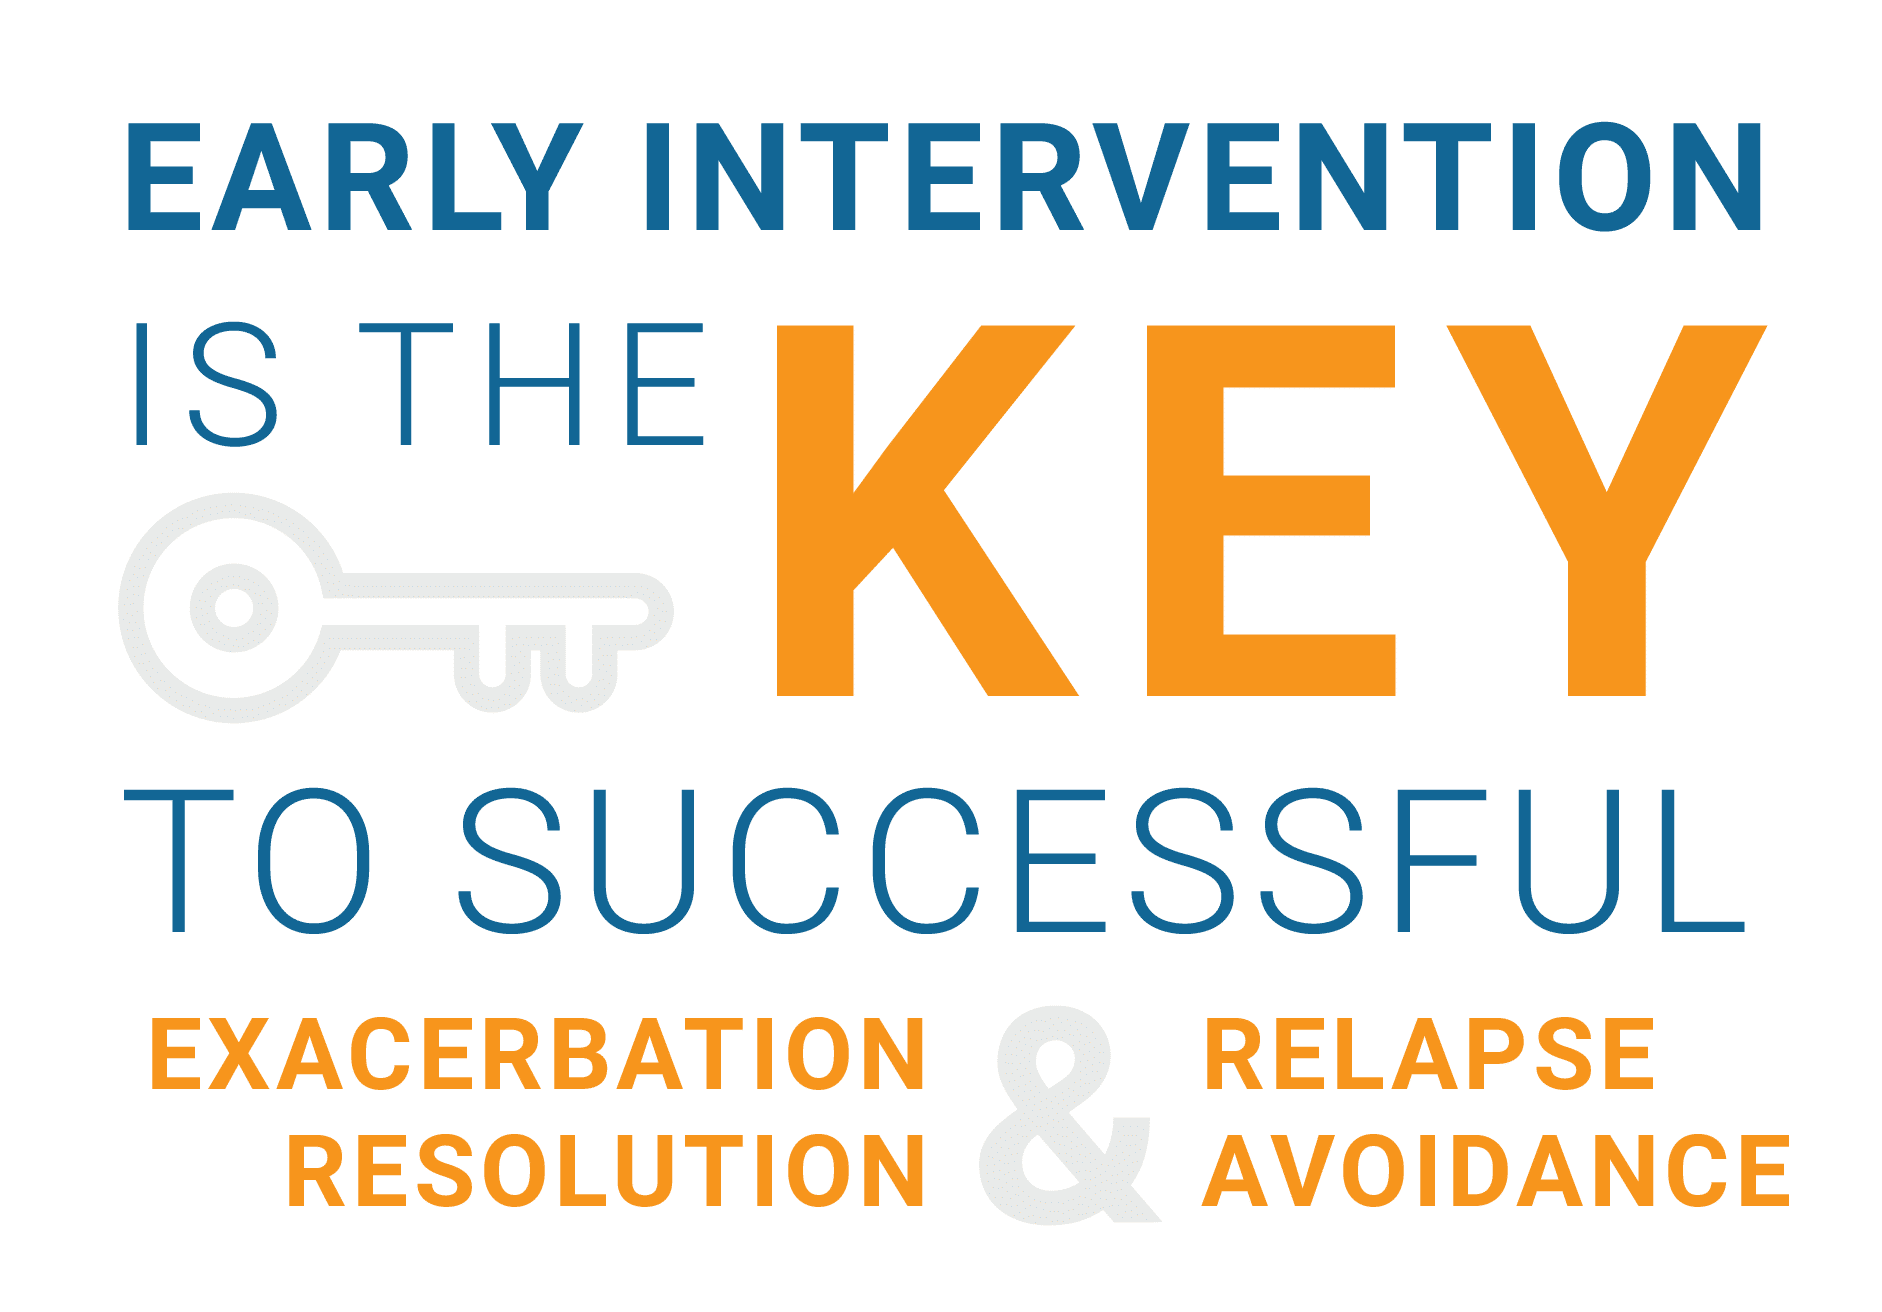 early intervention, key, successful, exacerbation resolution, relapse avoidance